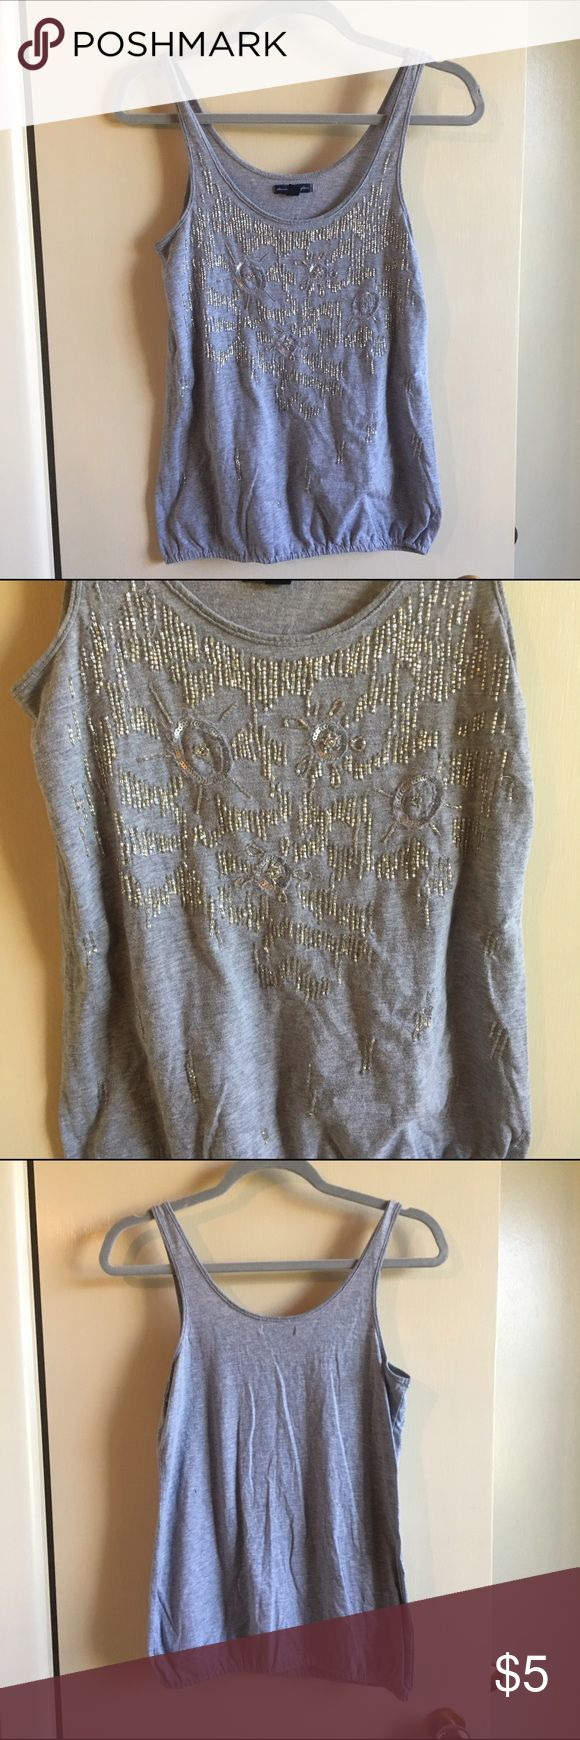 GRAY AMERICAN EAGLE SEQUINED TANK TOP GRAY AMERICAN EAGLE SEQUINED TANK TOP American Eagle Outfitters Tops Tank Tops